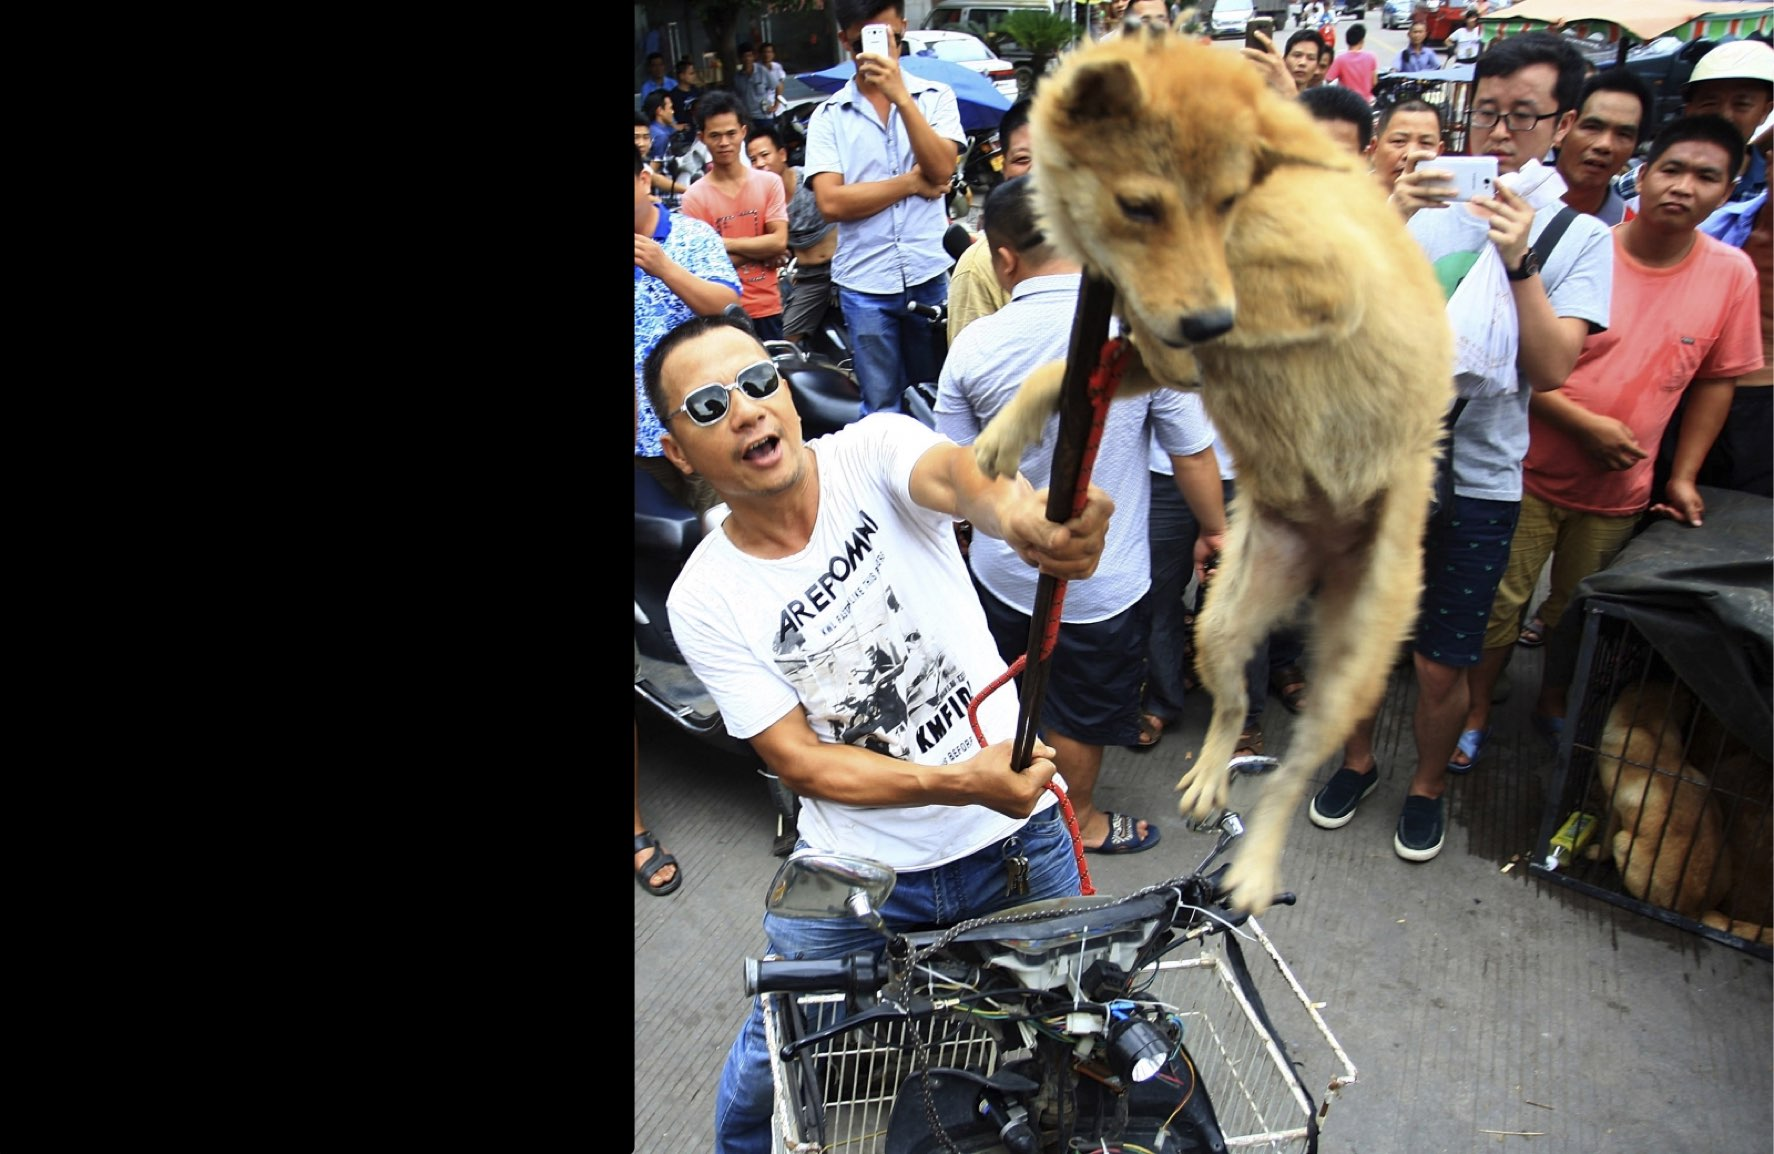 Shut down the Yulin dog meat festival! - OnePlus Forums - photo#45